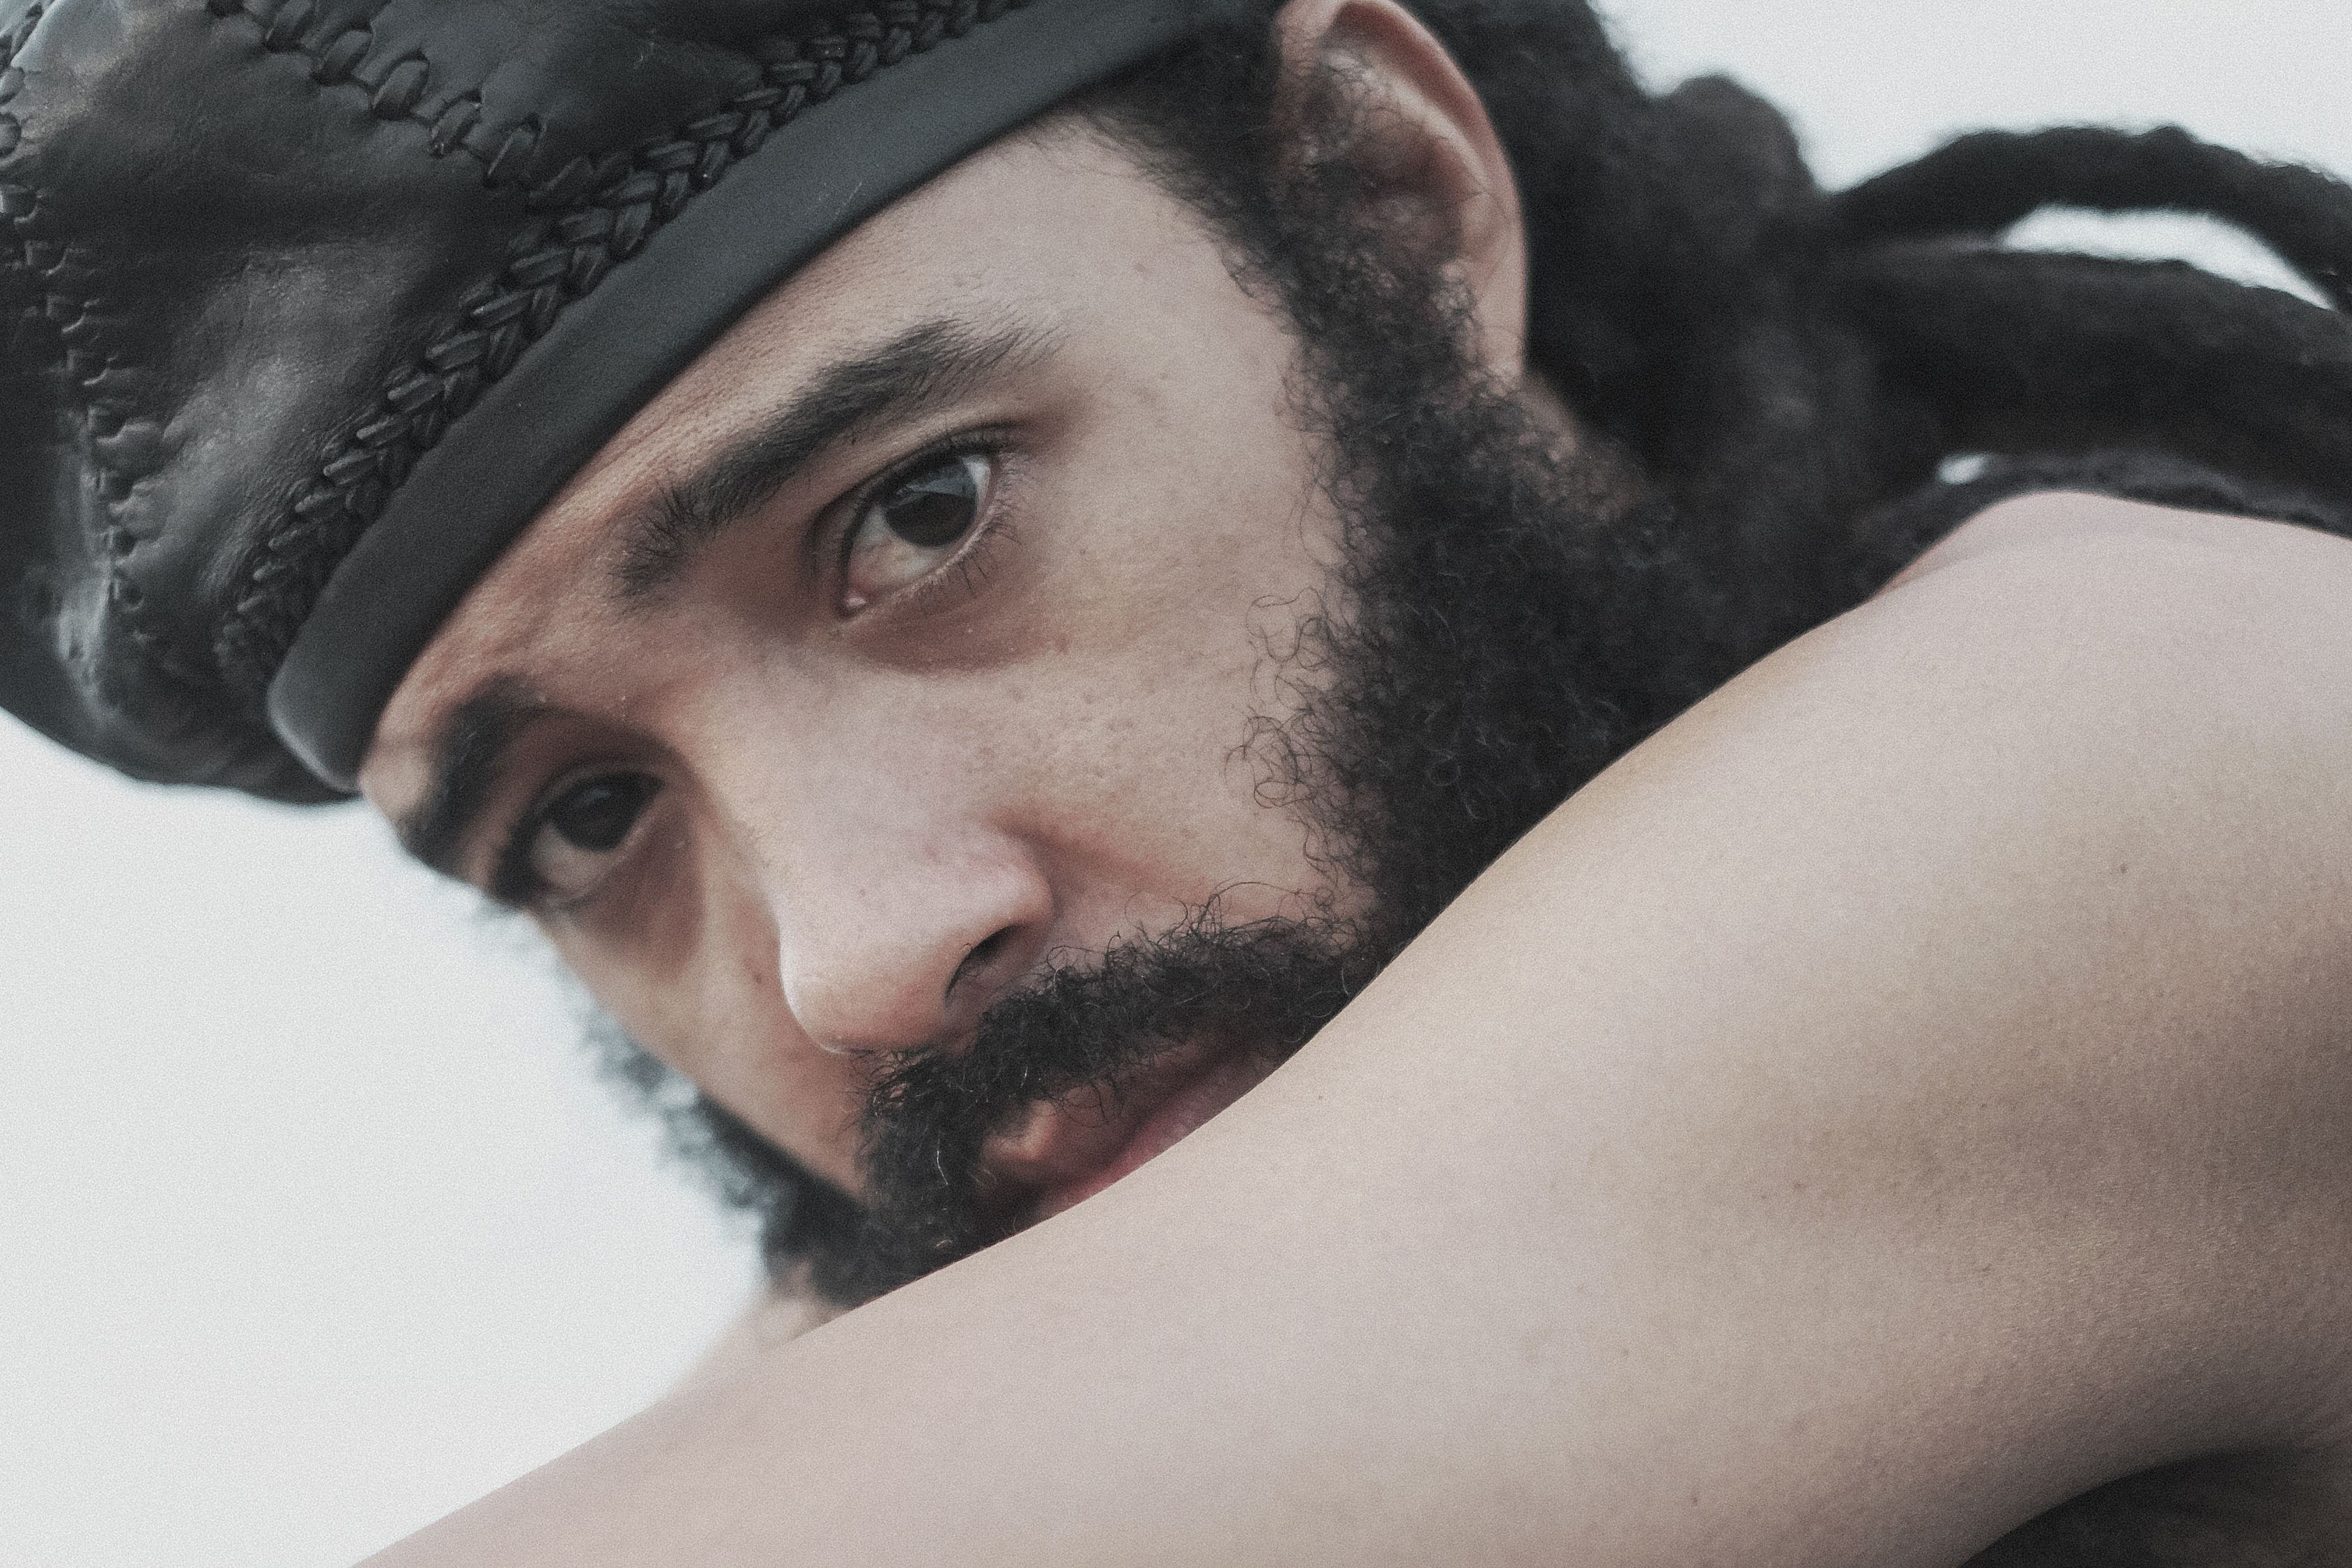 Jamaican singer Protoje has emerged as a leader of the modern reggae revival movement.